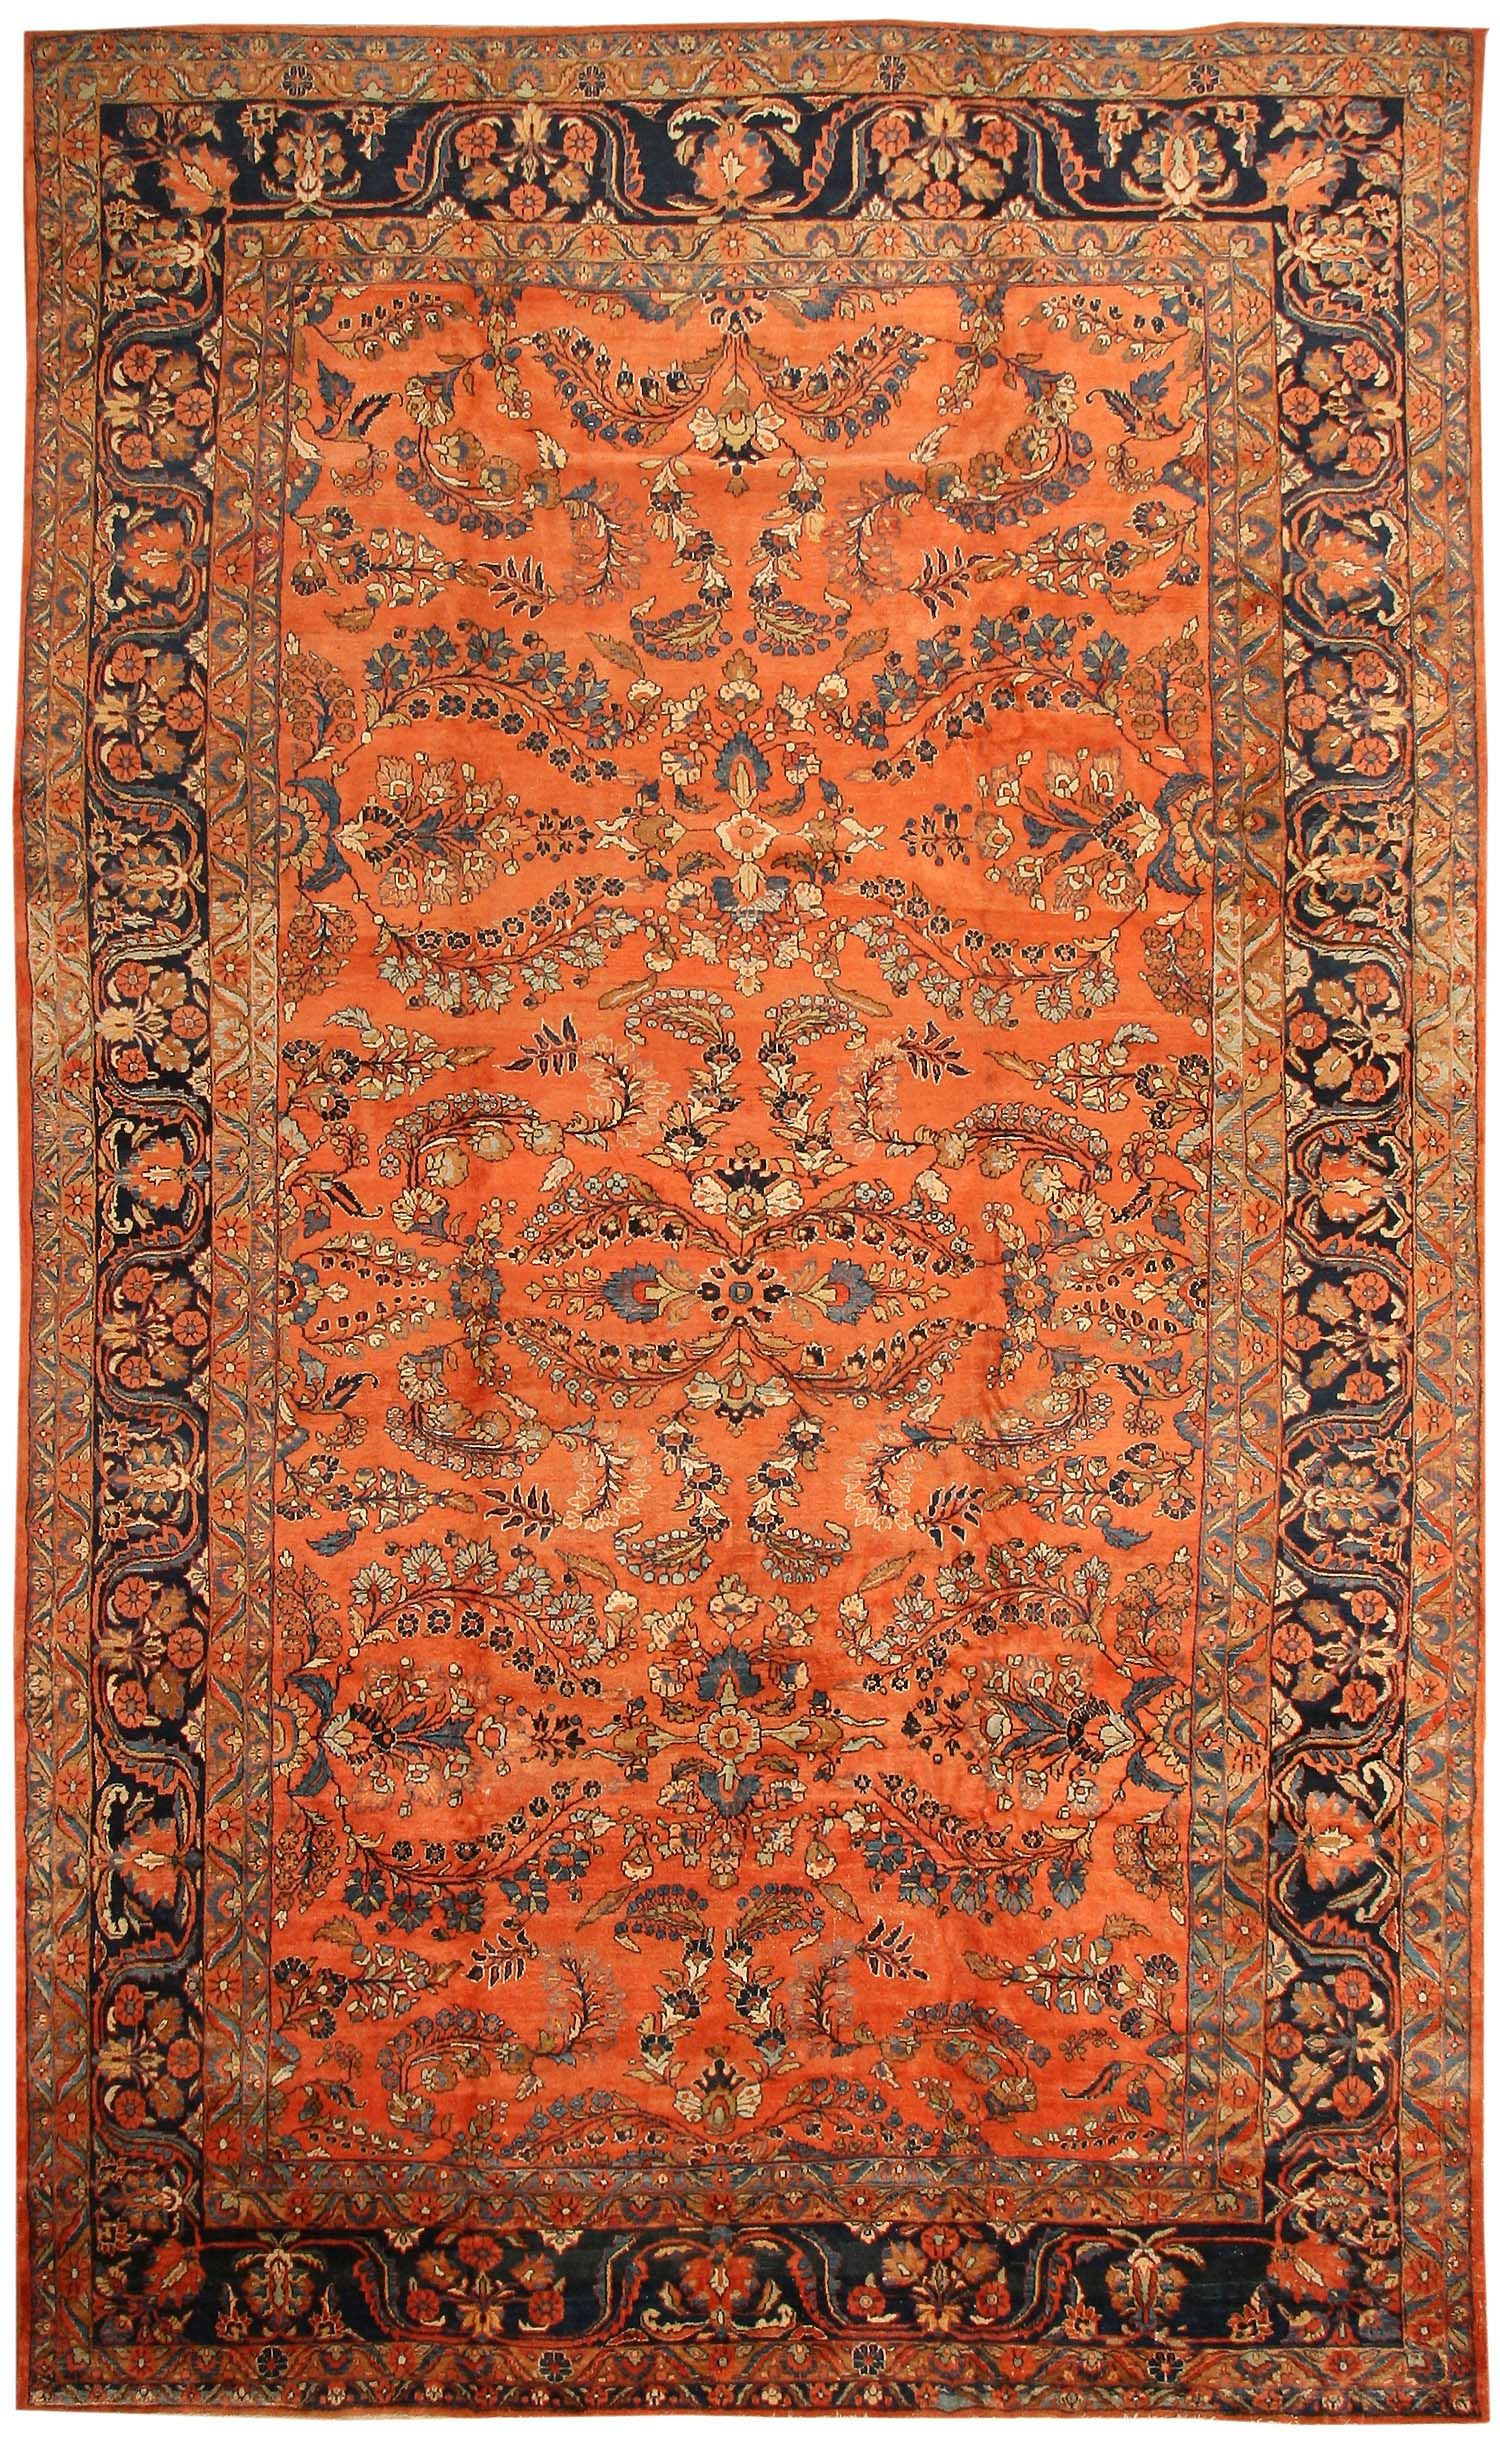 Antique Sultanabad Persian Carpet 40470 Detail Large View By Nazmiyal